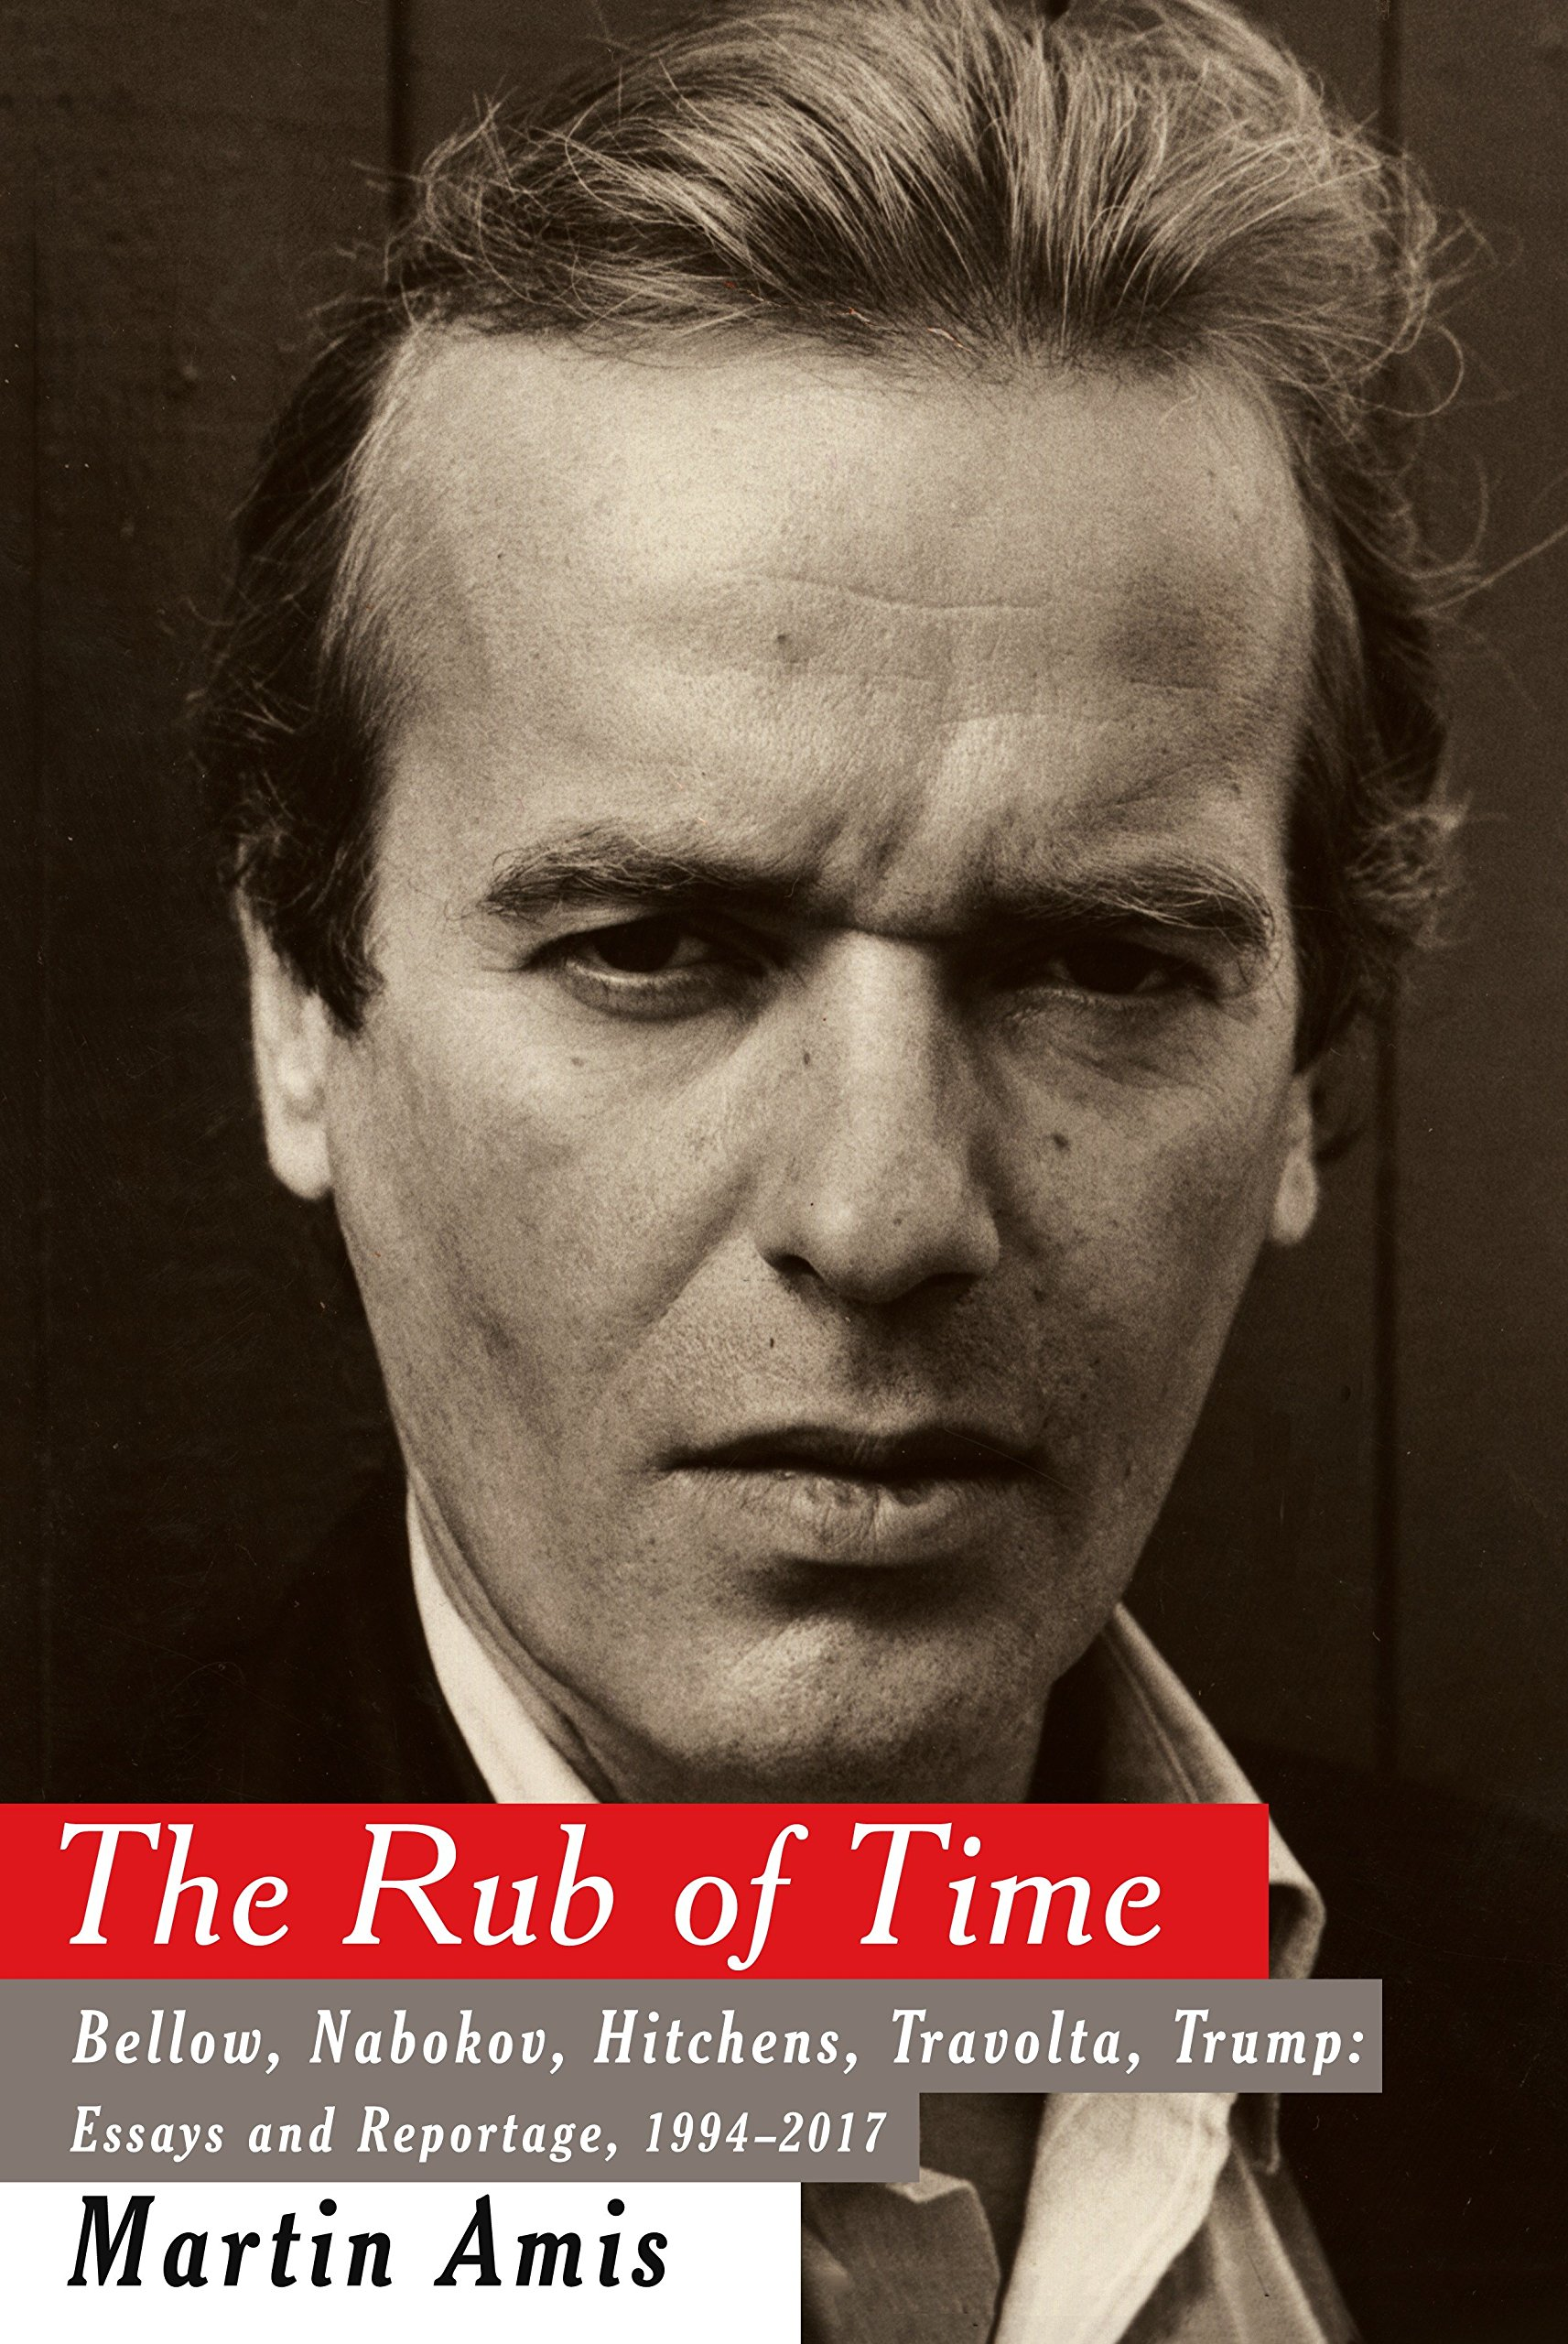 The Rub Of Time Bellow Nabokov Hitchens Travolta Trump Essays  The Rub Of Time Bellow Nabokov Hitchens Travolta Trump Essays And  Reportage  Martin Amis  Amazoncom Books College Essay Papers also Global Warming Essay Thesis  Business Letter Writing Services In Simi Valleyc California